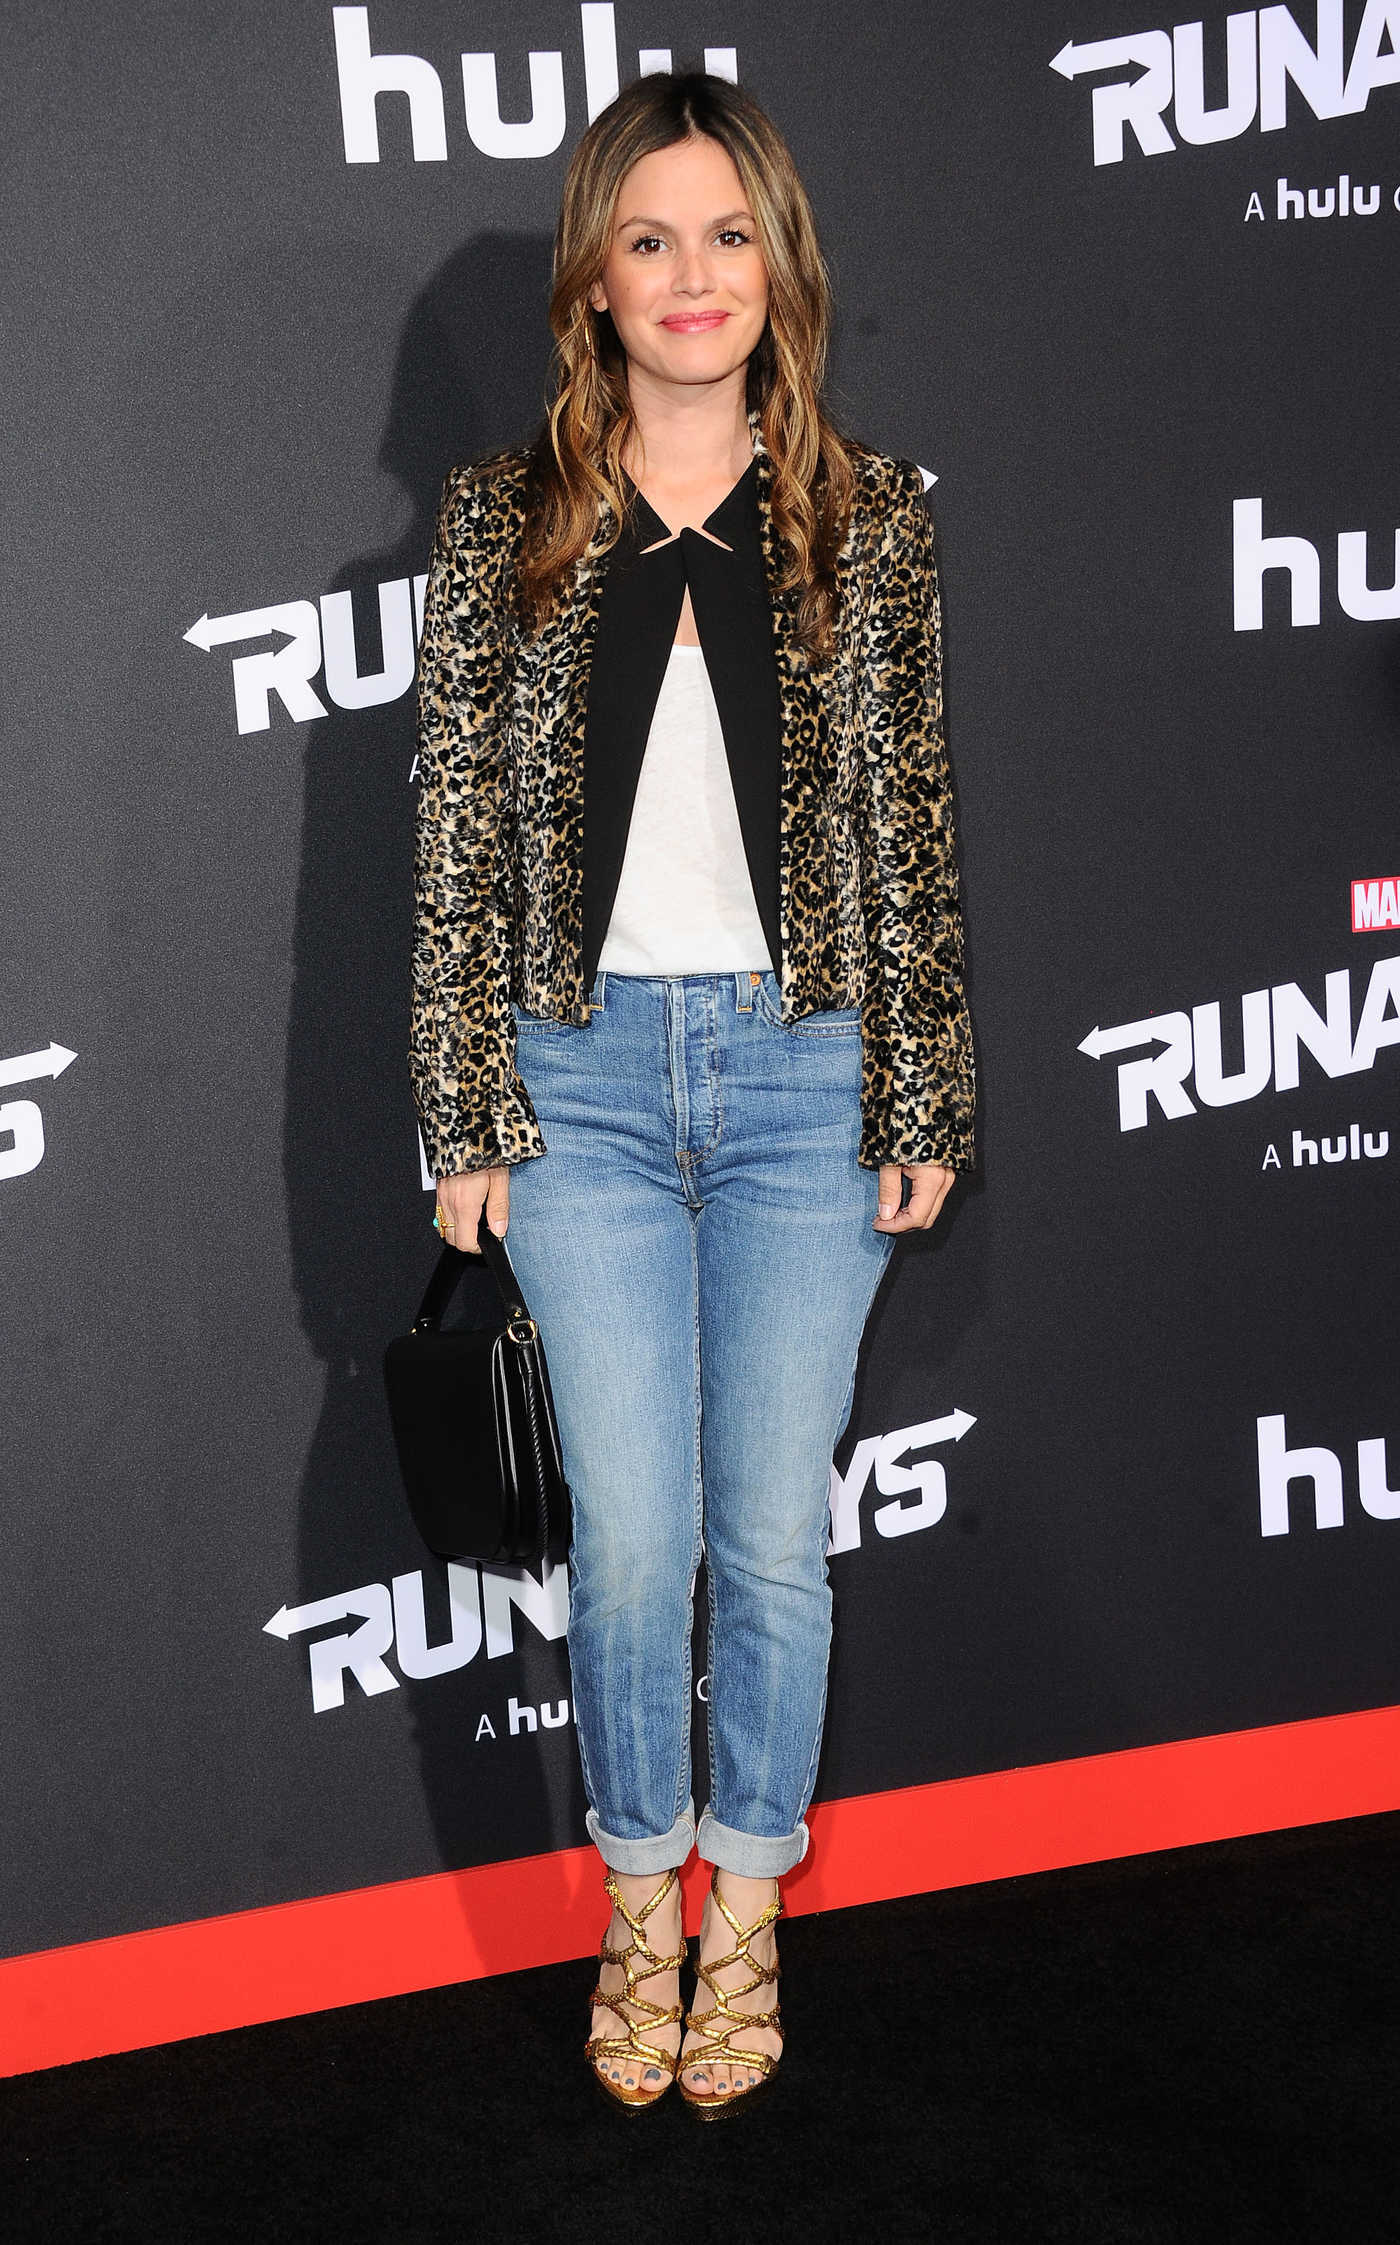 Rachel Bilson at the Runaways Premiere at Regency Bruin Theatre in Los Angeles 11/16/2017